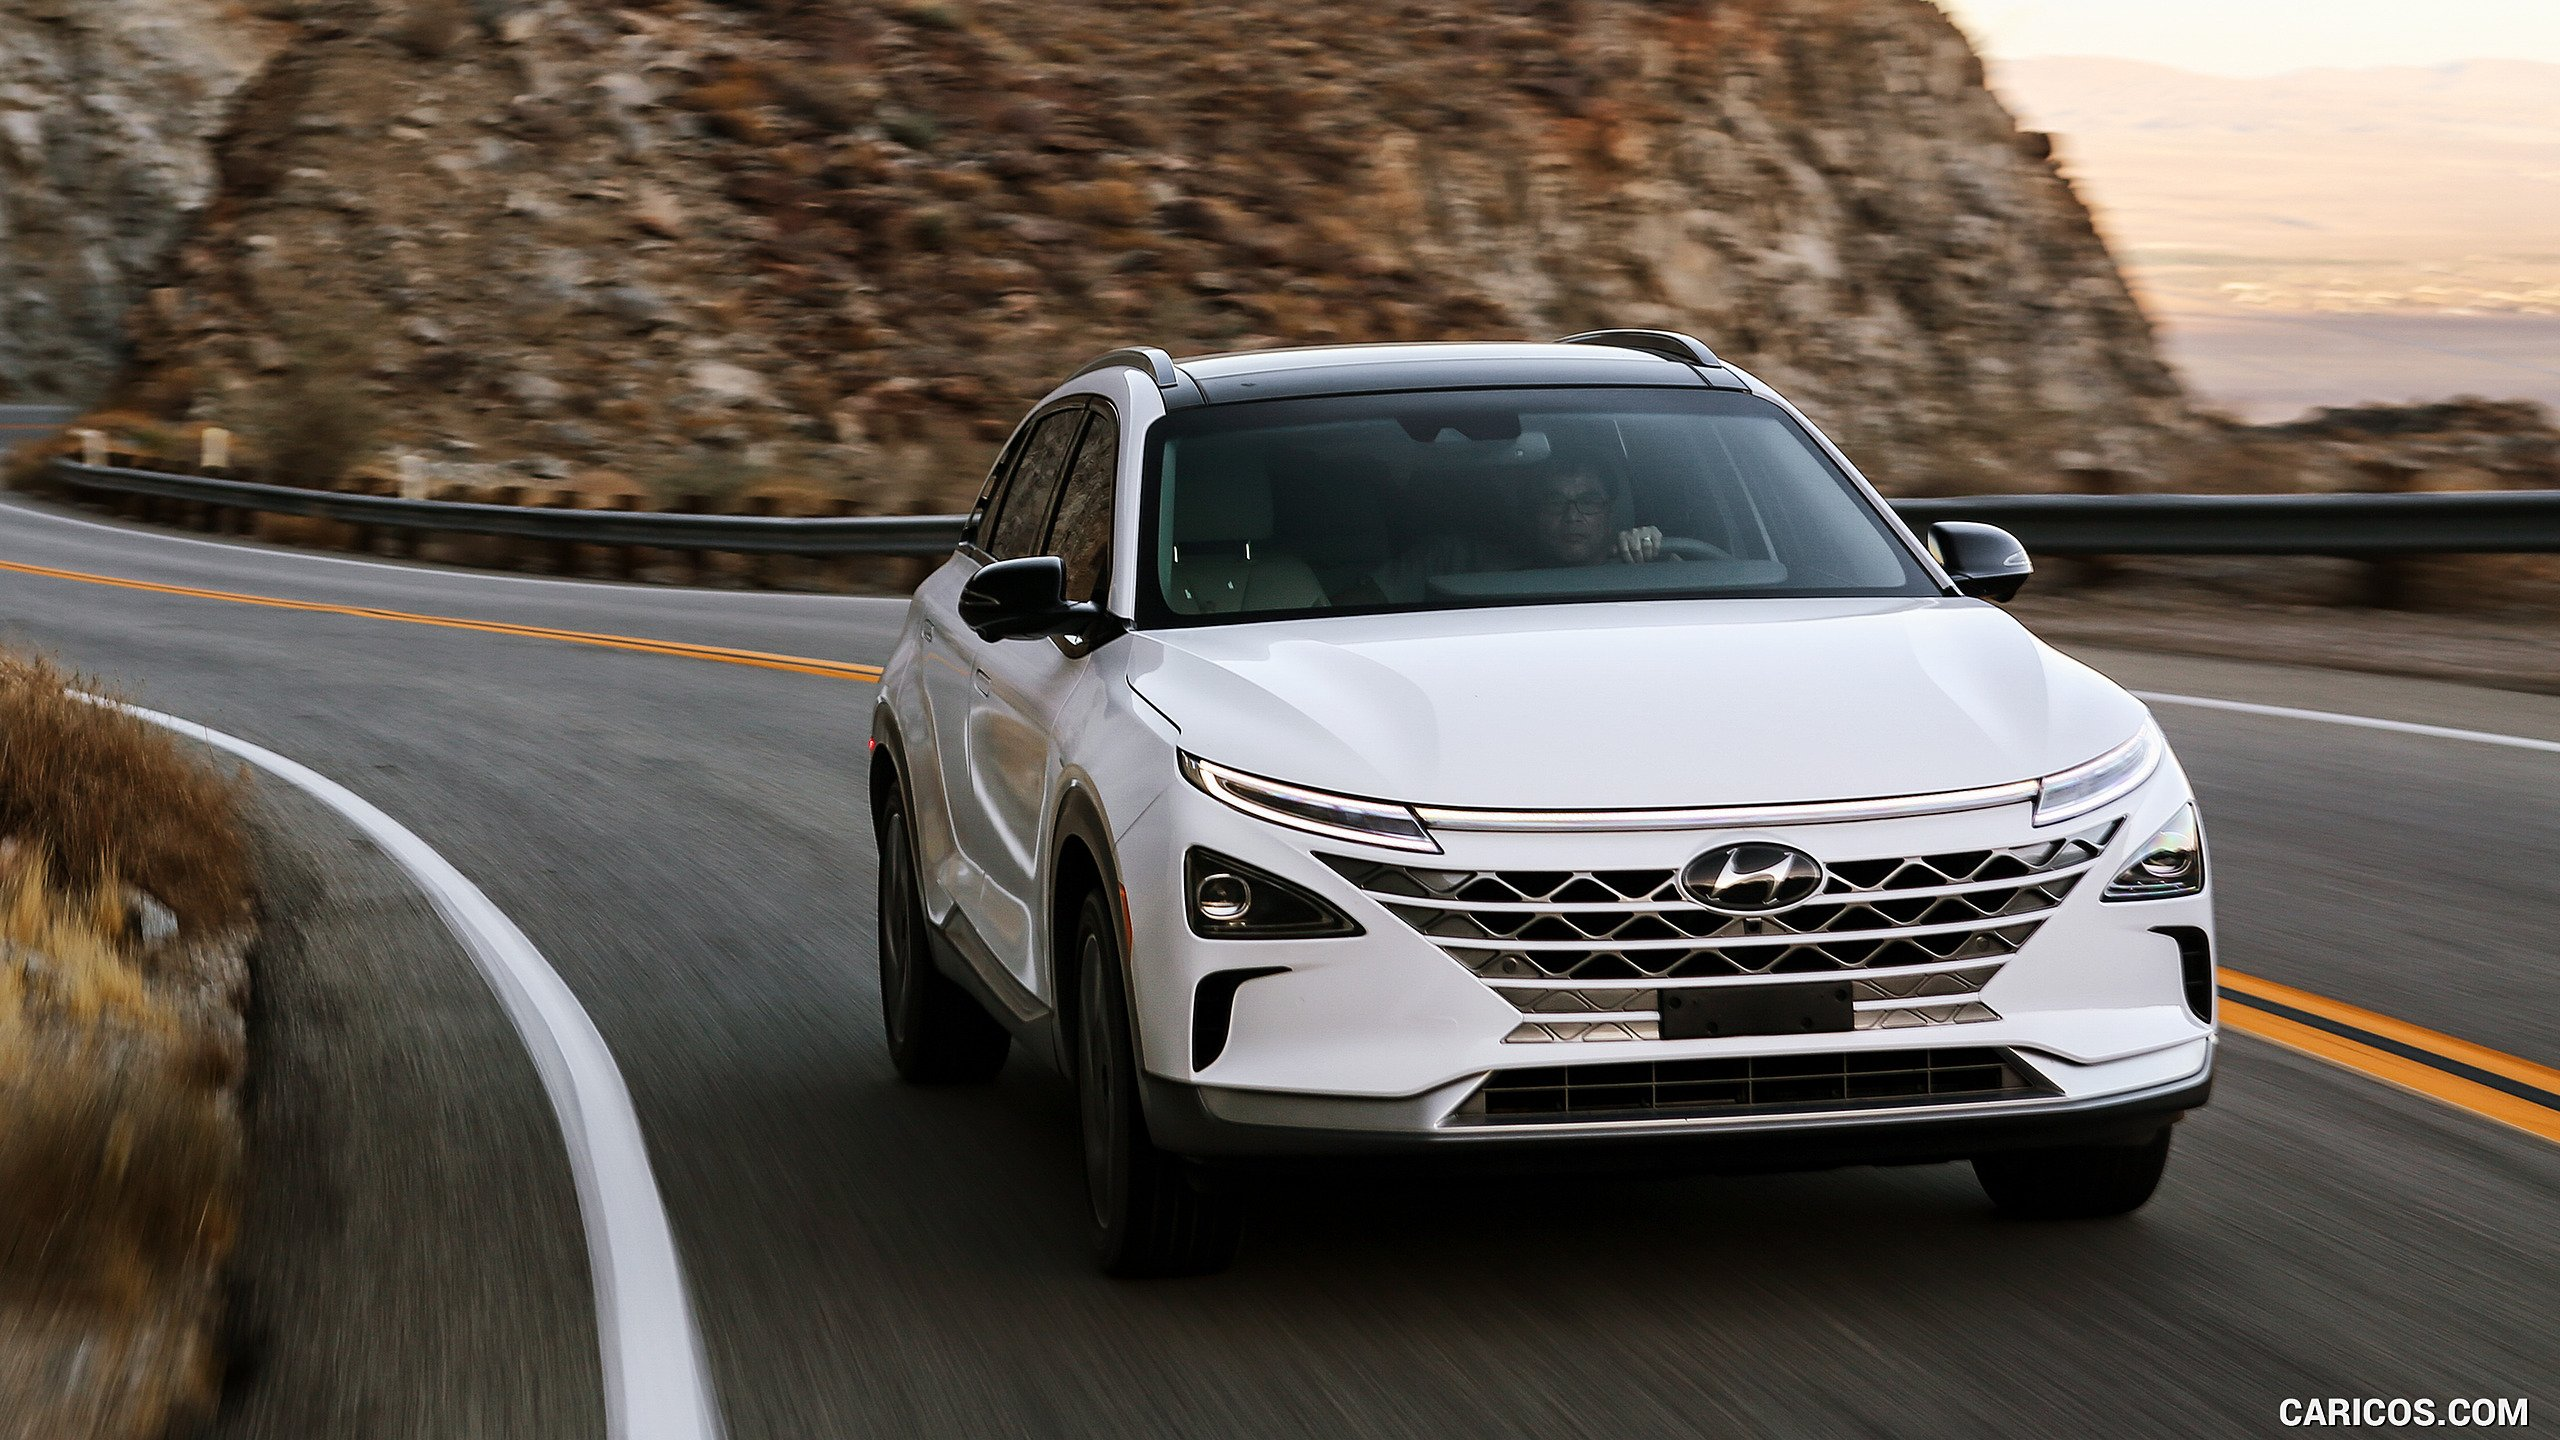 2019 Hyundai NEXO FCEV   Front Three Quarter HD Wallpaper 15 2560x1440